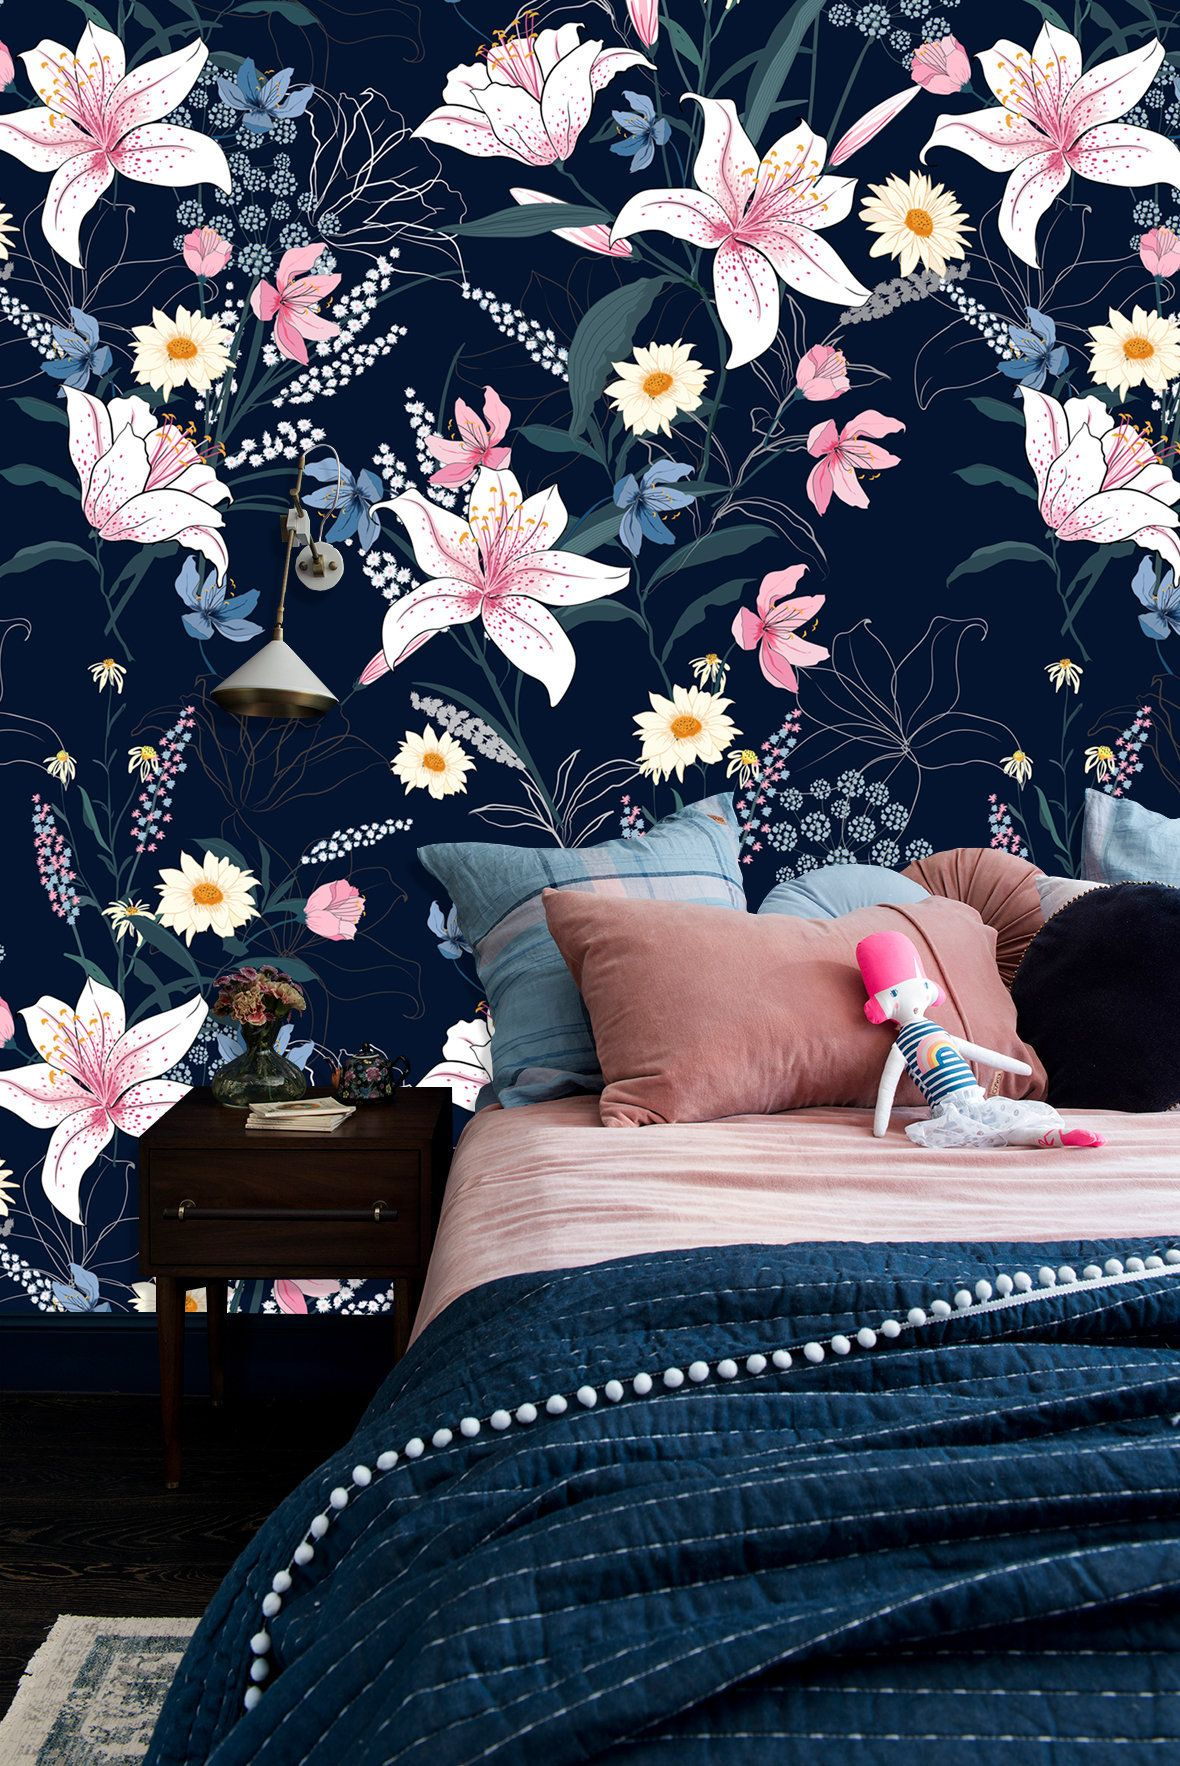 Pink Lily Flowers on Dark Blue Background Wall Mural